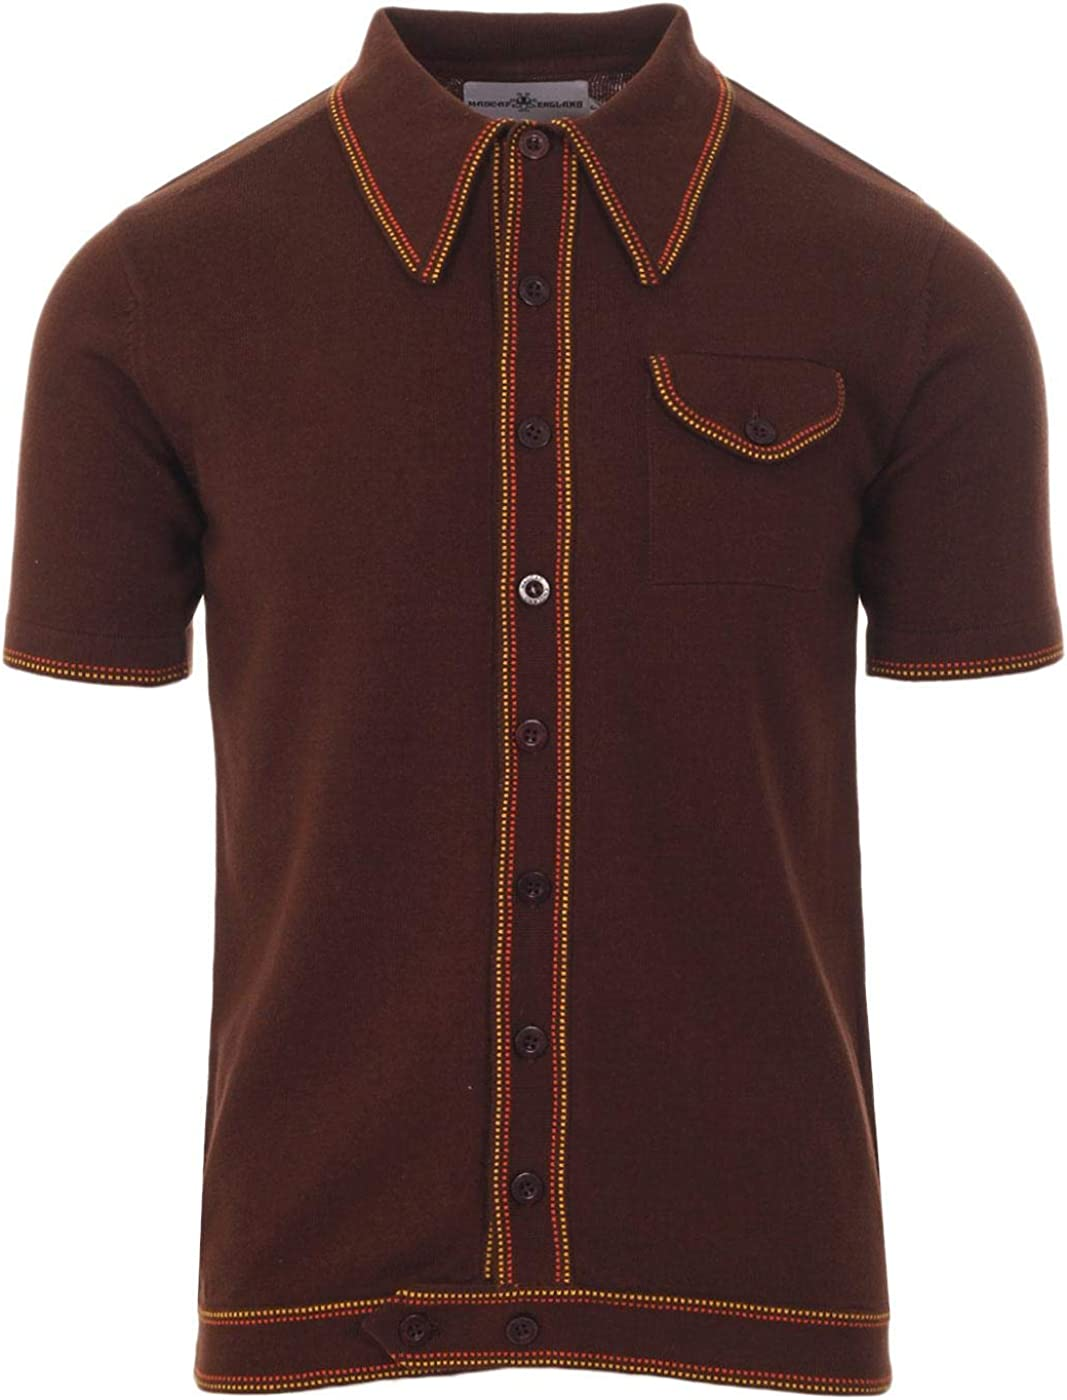 Mens Vintage Shirts – Casual, Dress, T-shirts, Polos Madcap England Crawdaddy Micro Dash Knit Polo Caramel MC166 £34.99 AT vintagedancer.com